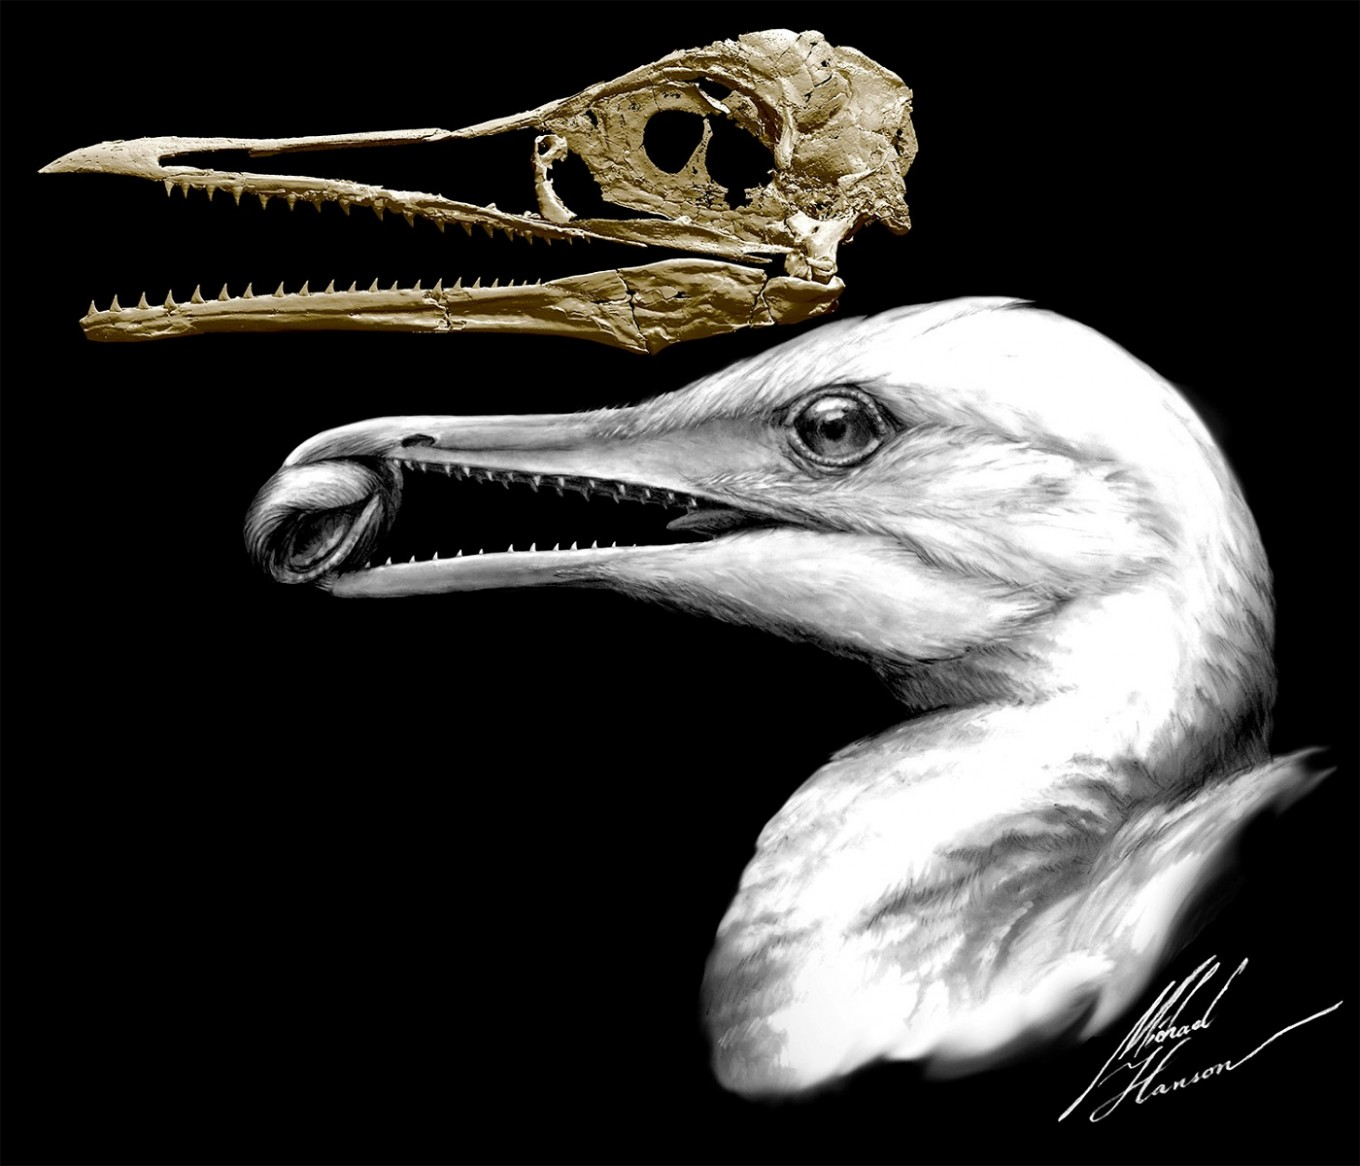 Ancient bird with beak and teeth blended dinosaur, avian traits